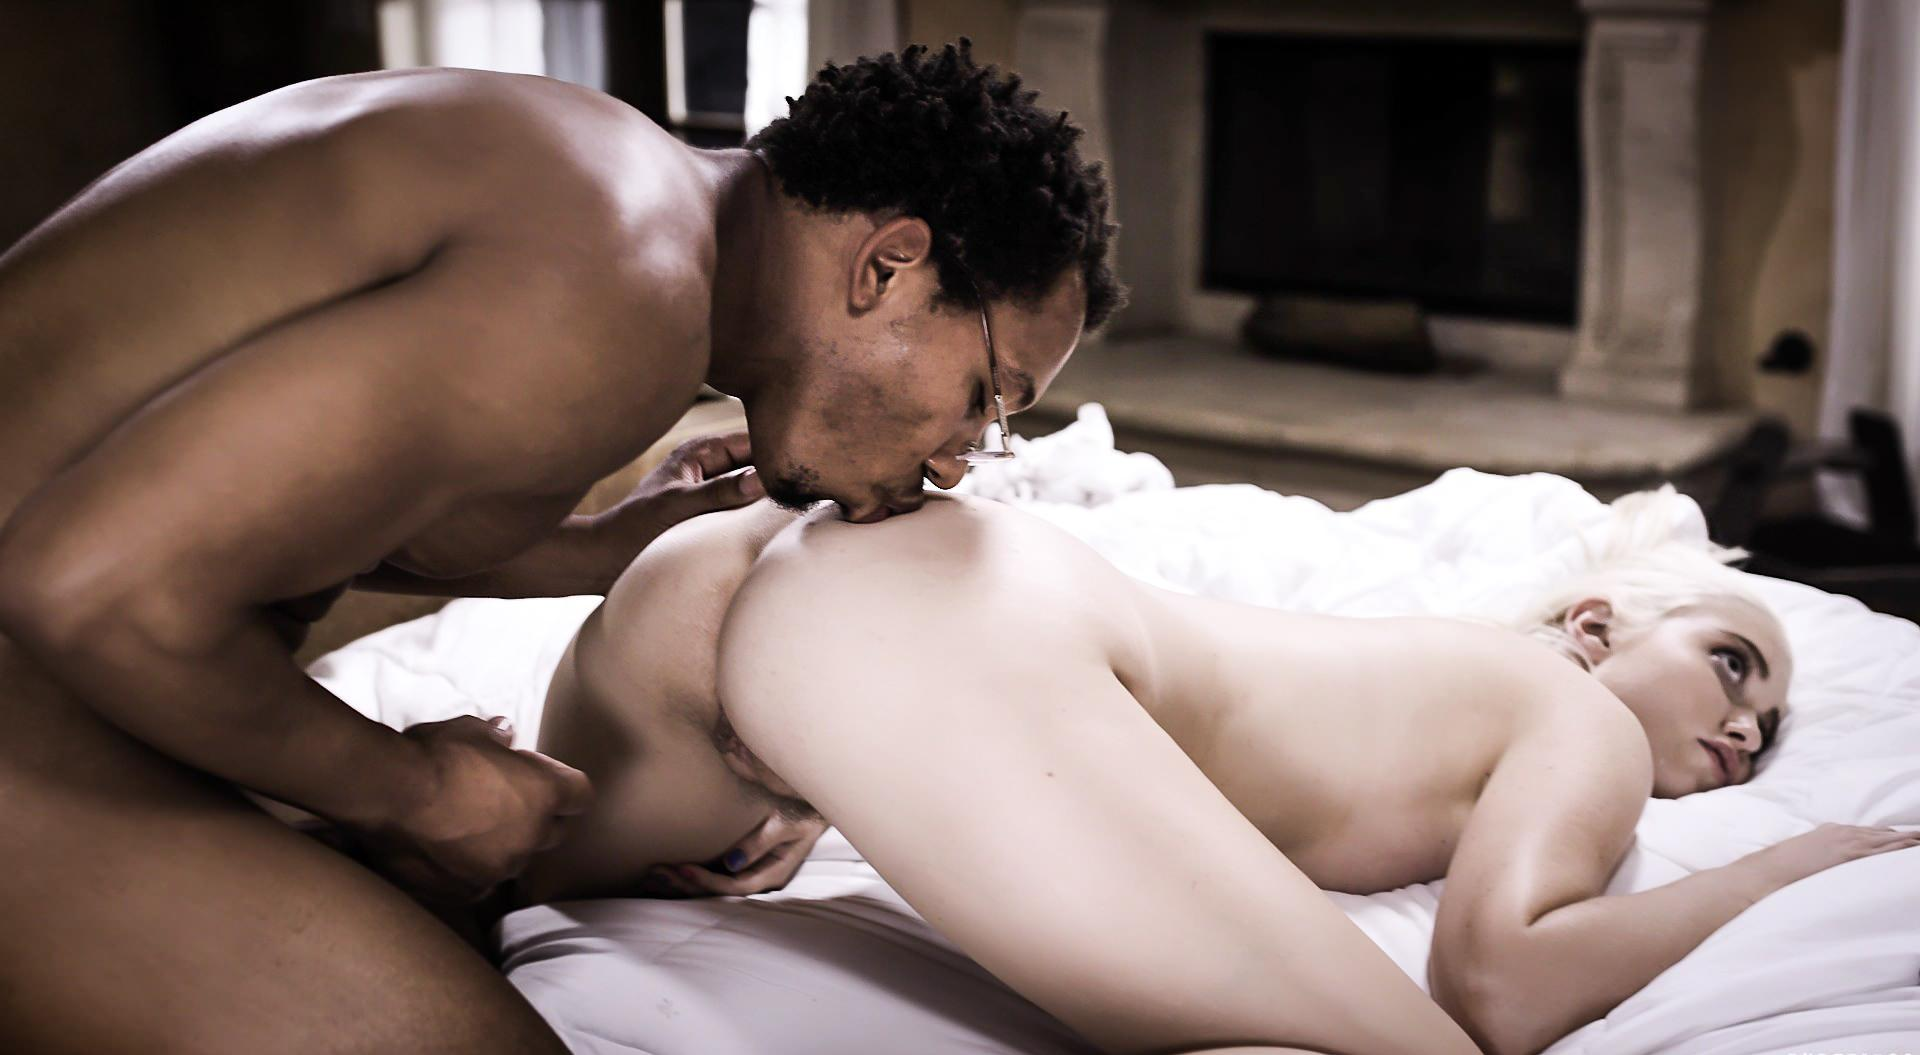 Chloe Cherry made the black tutor eat her vagina picture 7